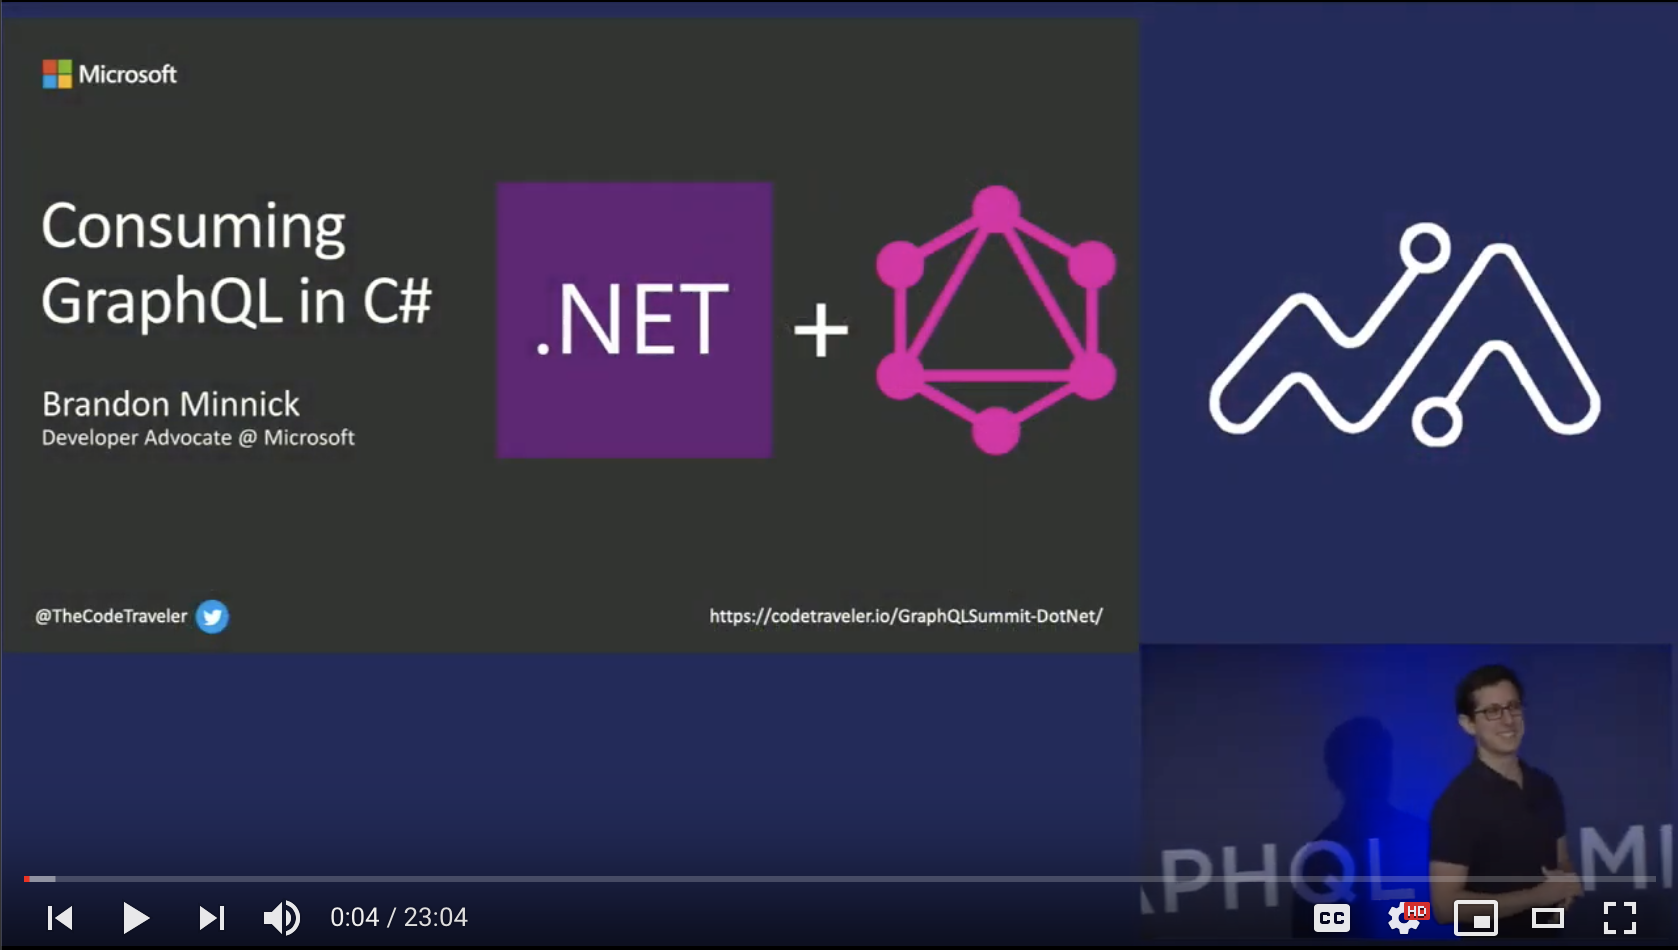 Consuming GraphQL in C#